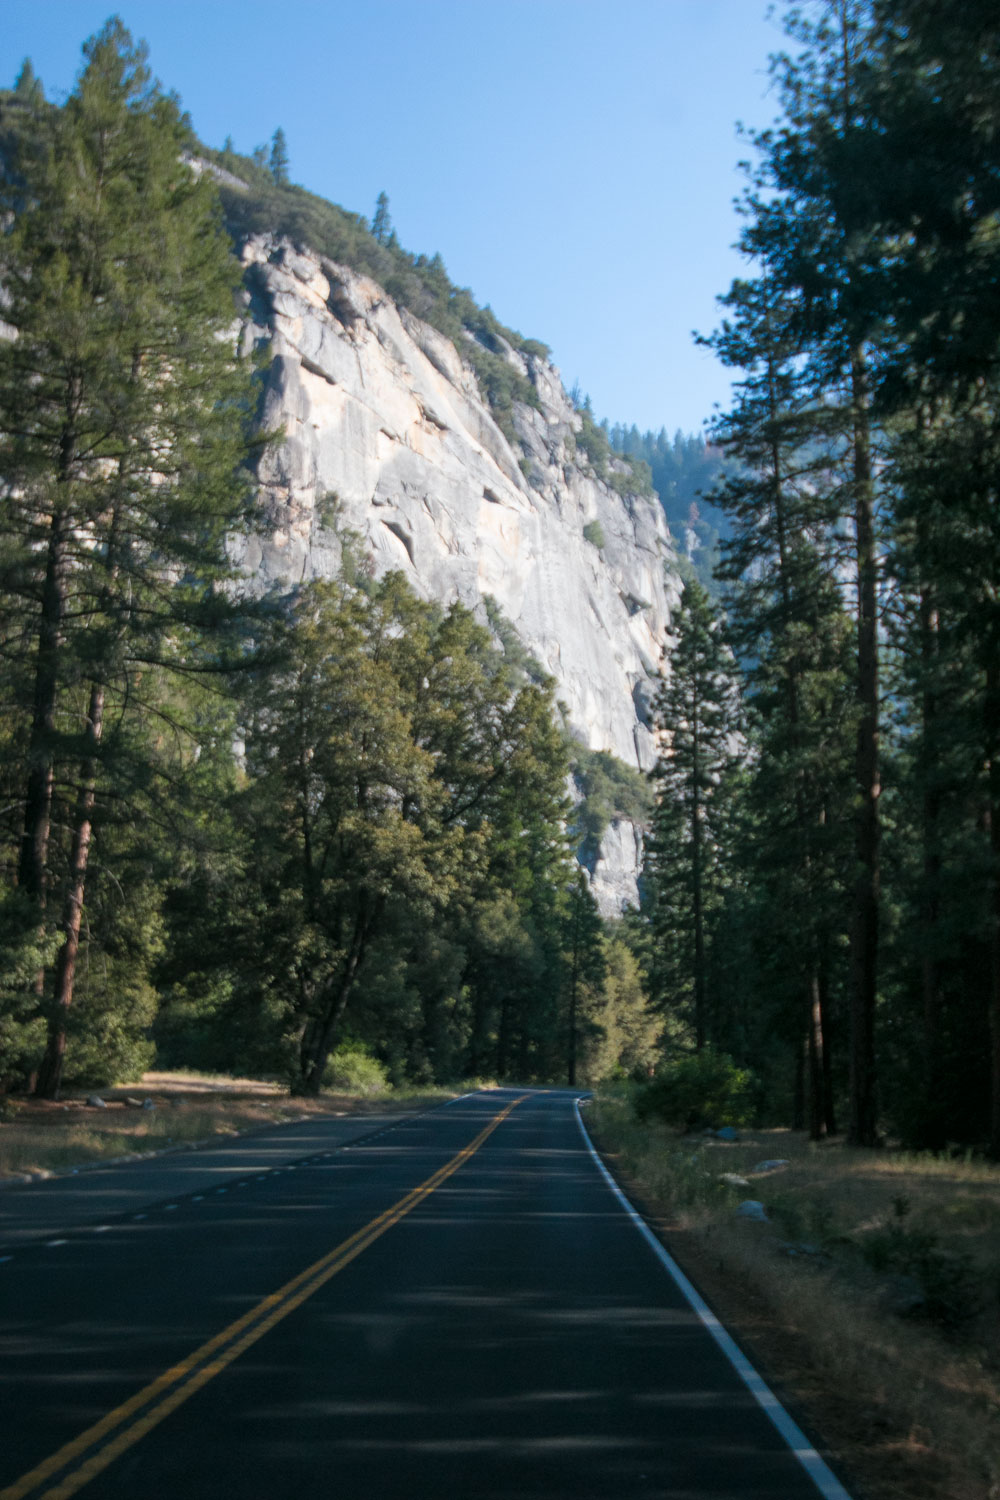 Driving through Yosemite Valley